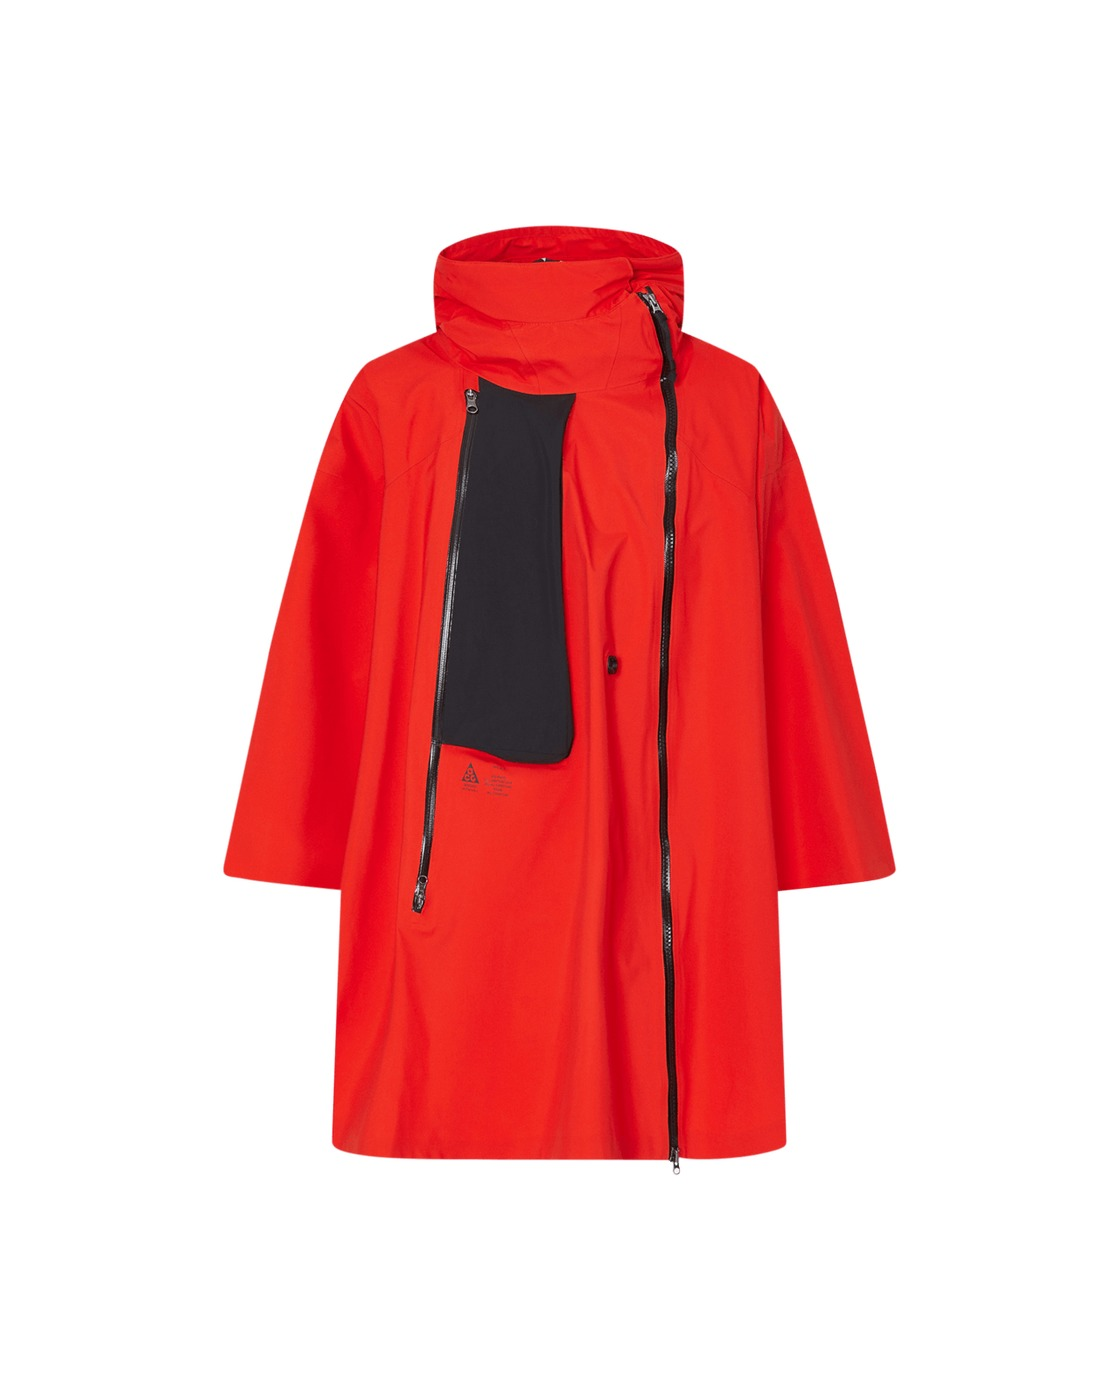 Nike Special Project Wmns 3 In 1 System Poncho Red/Black